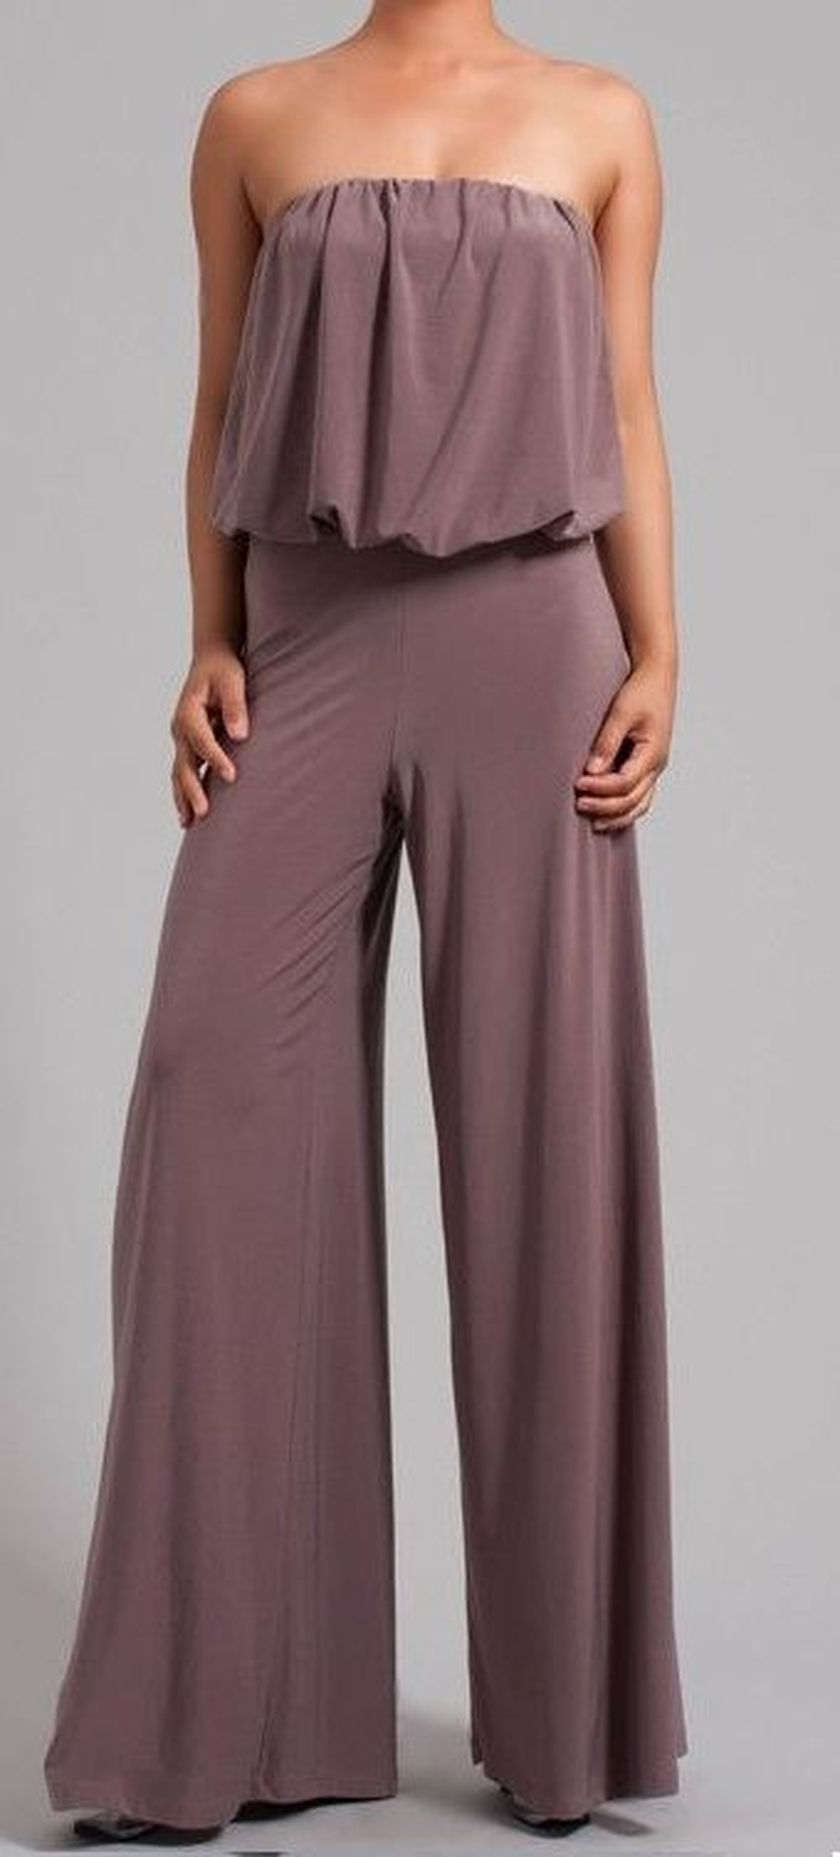 Jumpsuits strapless outfit 94